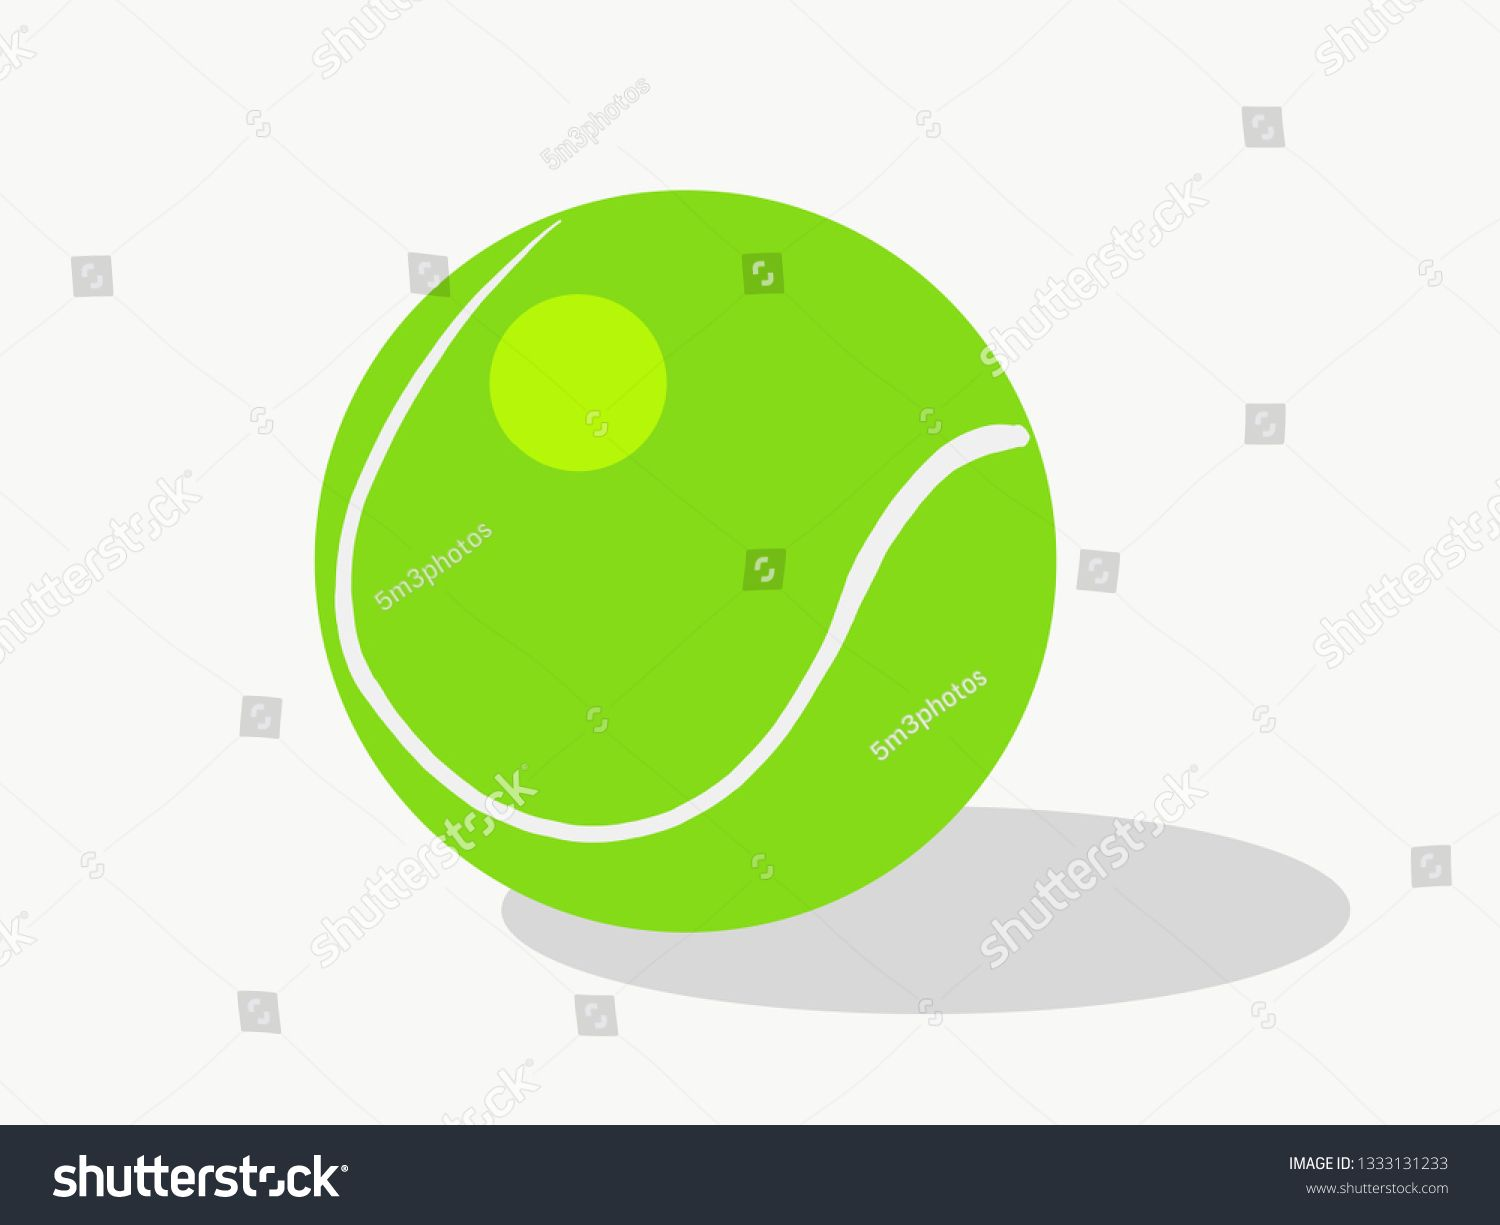 Tennis Ball Vector Illustration Isolated With Shadow Ad Sponsored Vector Ball Tennis Shadow Business Card Black Professional Business Cards Tennis Ball